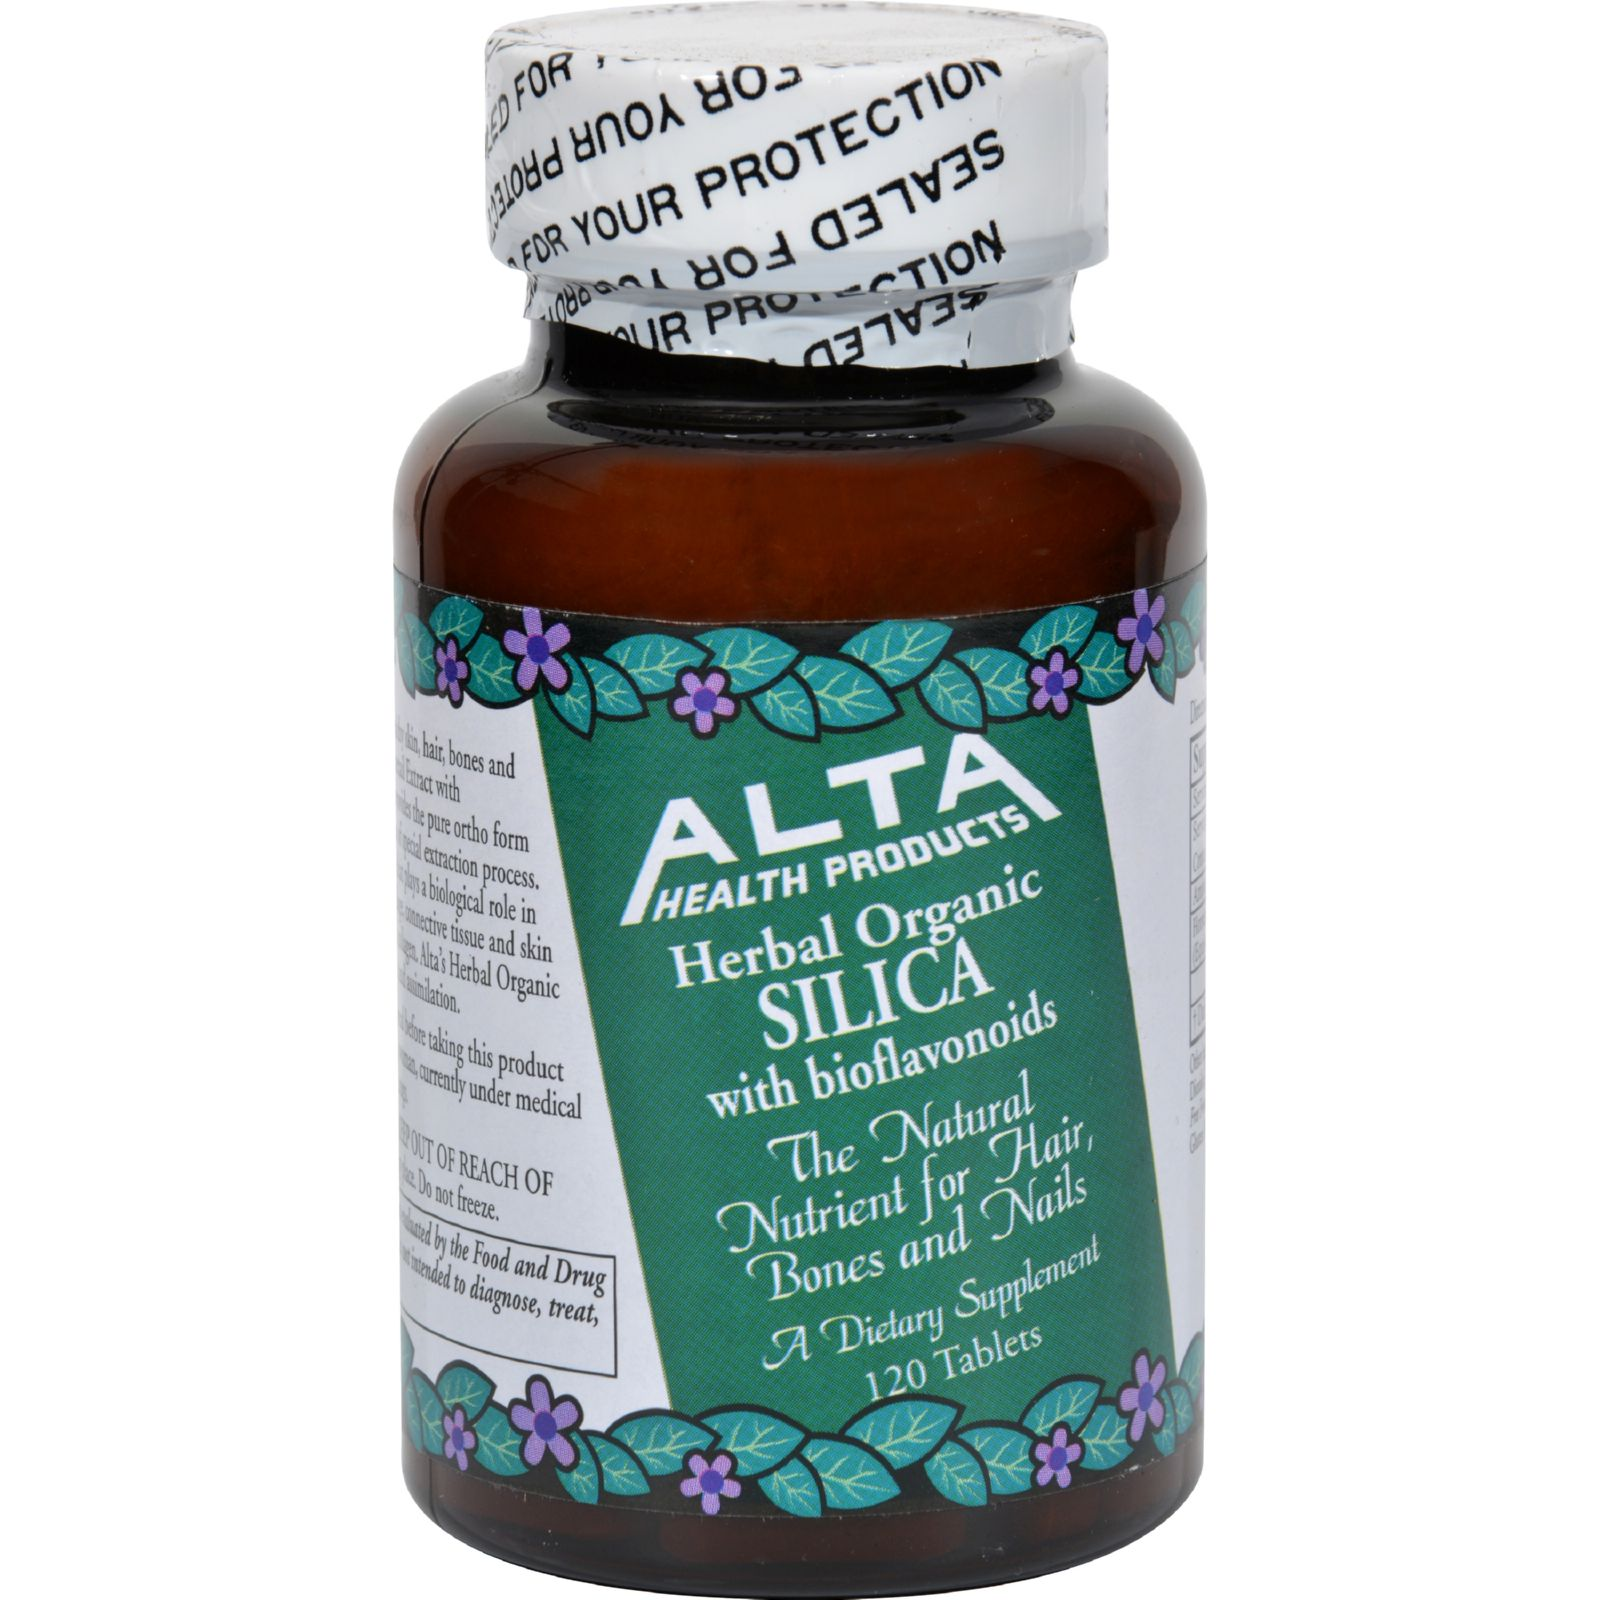 Alta health products silica - Best restaurant in panama city